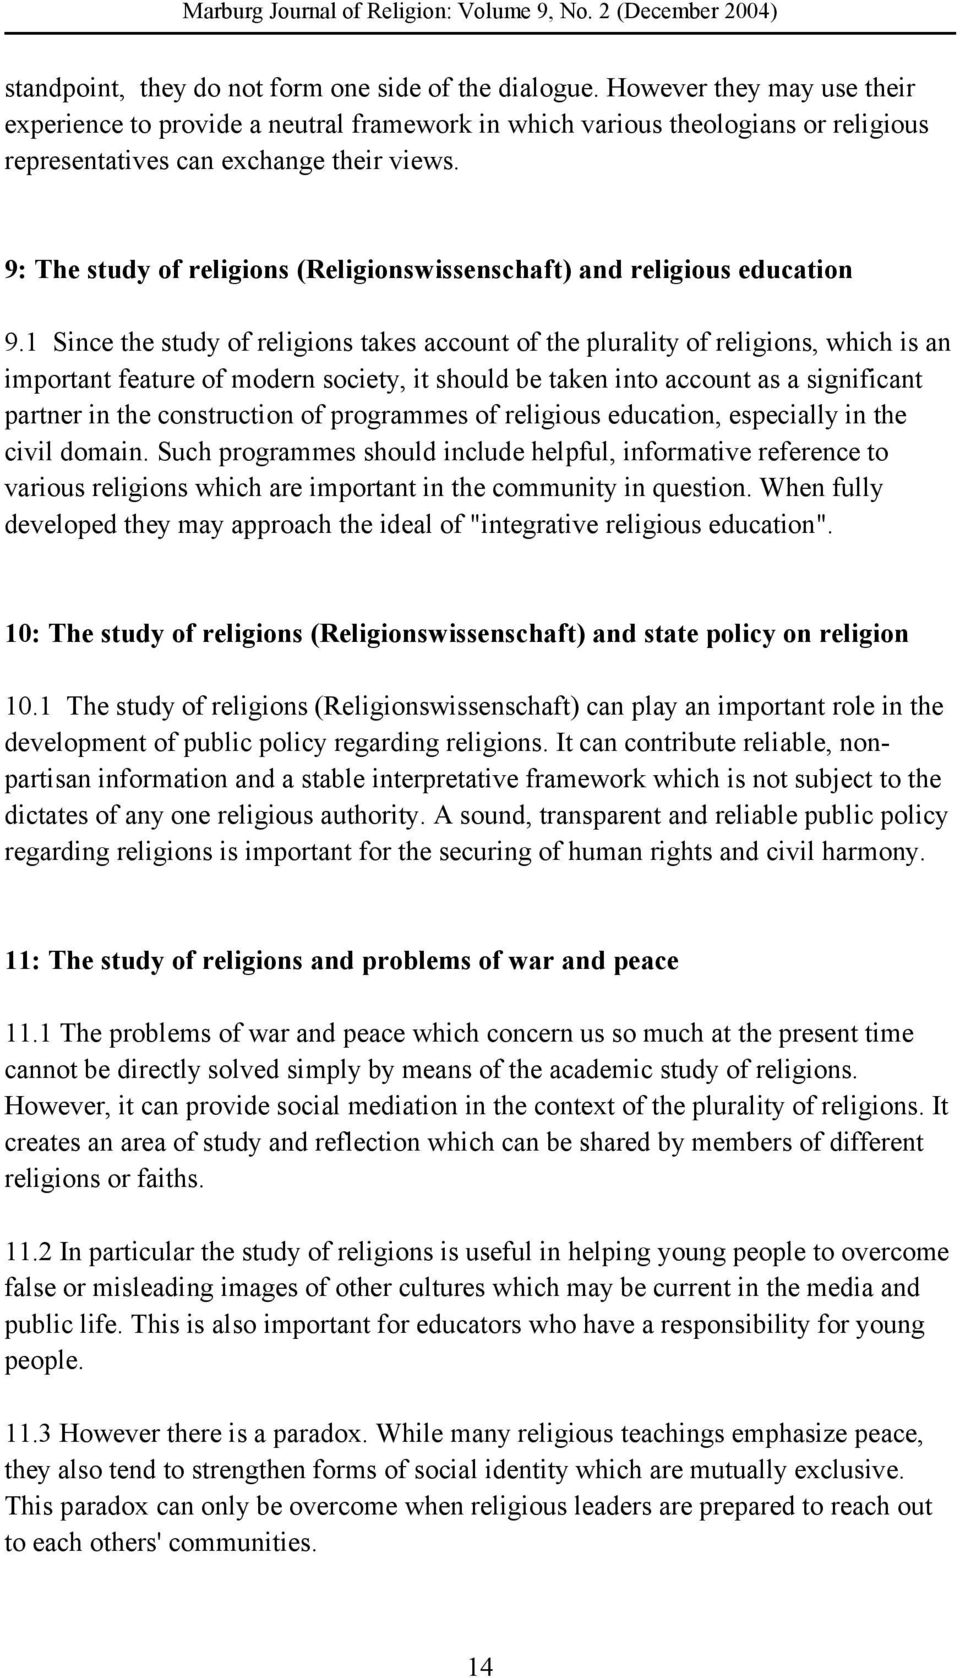 9: The study of religions (Religionswissenschaft) and religious education 9.